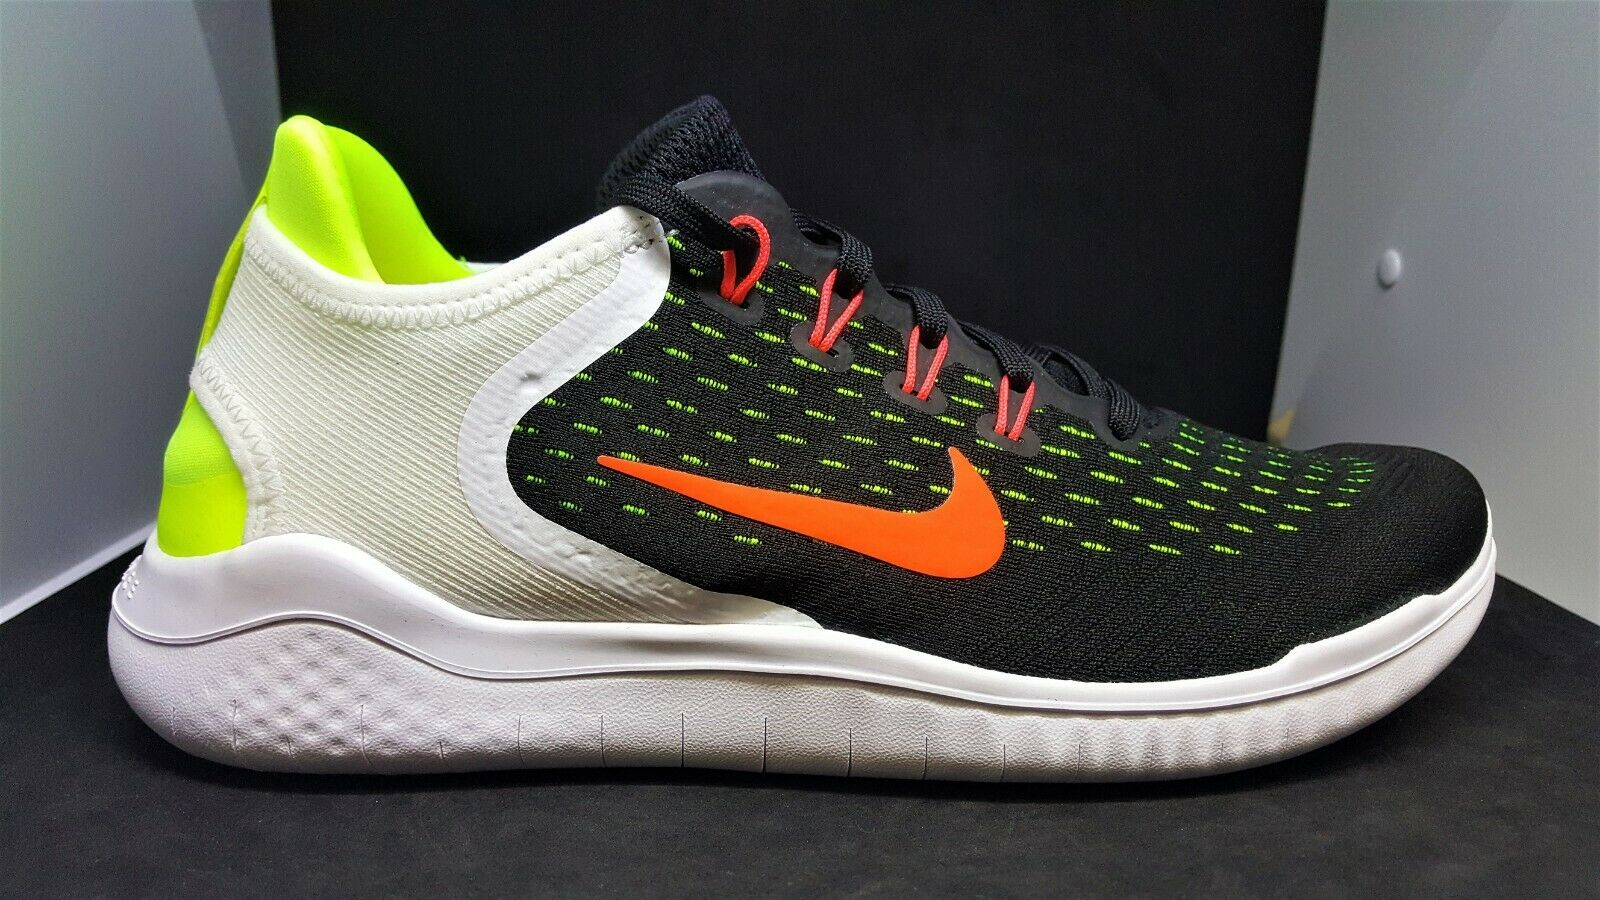 Nike Mens Free RN 2018 Men's running shoes size 9 942836-007 Multi-color